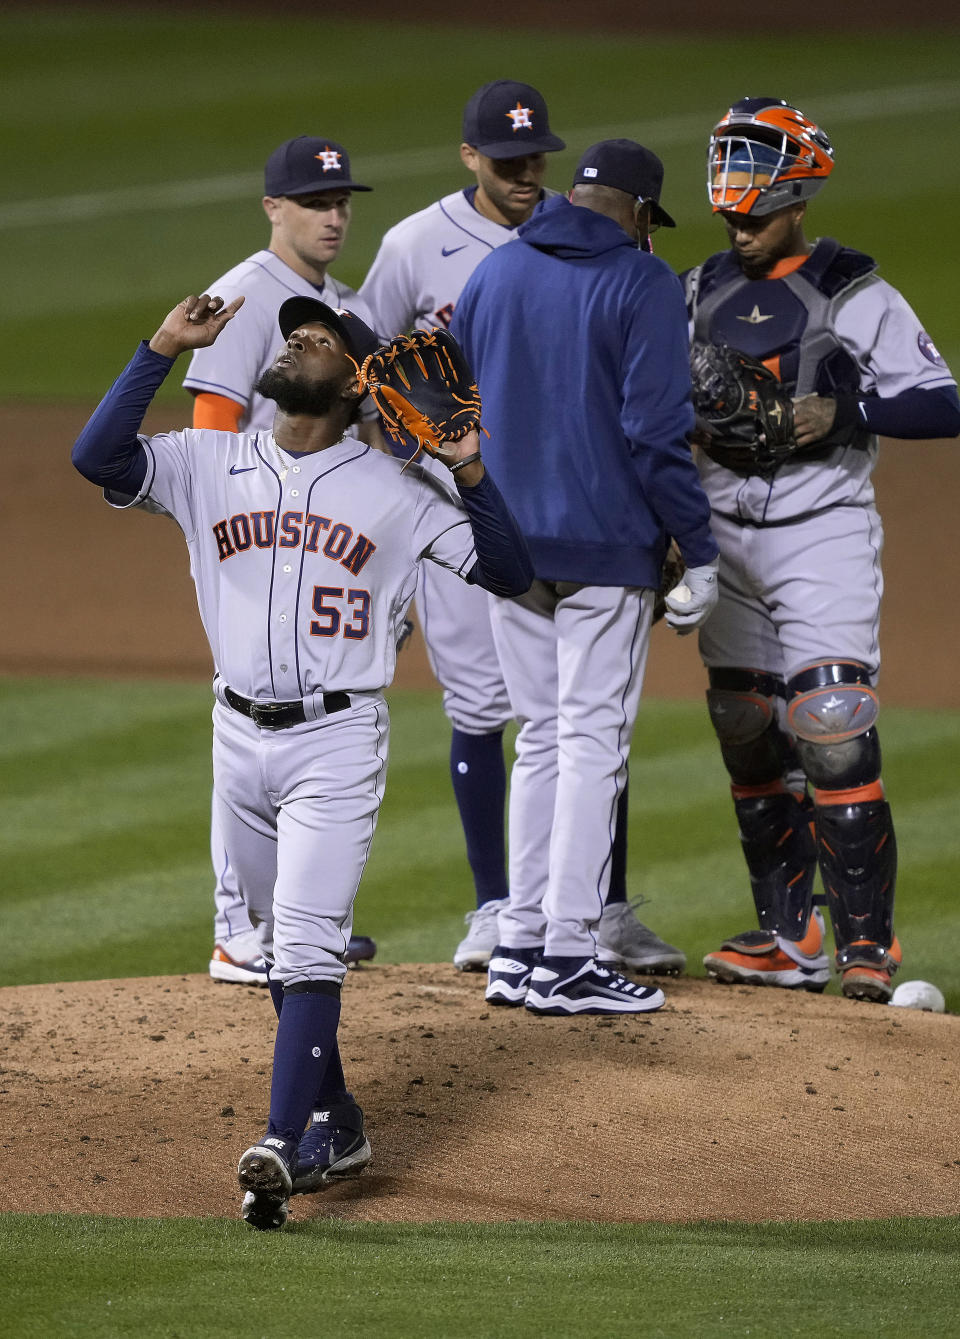 Houston Astros pitcher Cristian Javier (53) points to the sky as he is removed by manager Dusty Baker Jr. during the fourth inning of the team's baseball game against the Oakland Athletics on Friday, April 2, 2021, in Oakland, Calif. (AP Photo/Tony Avelar)